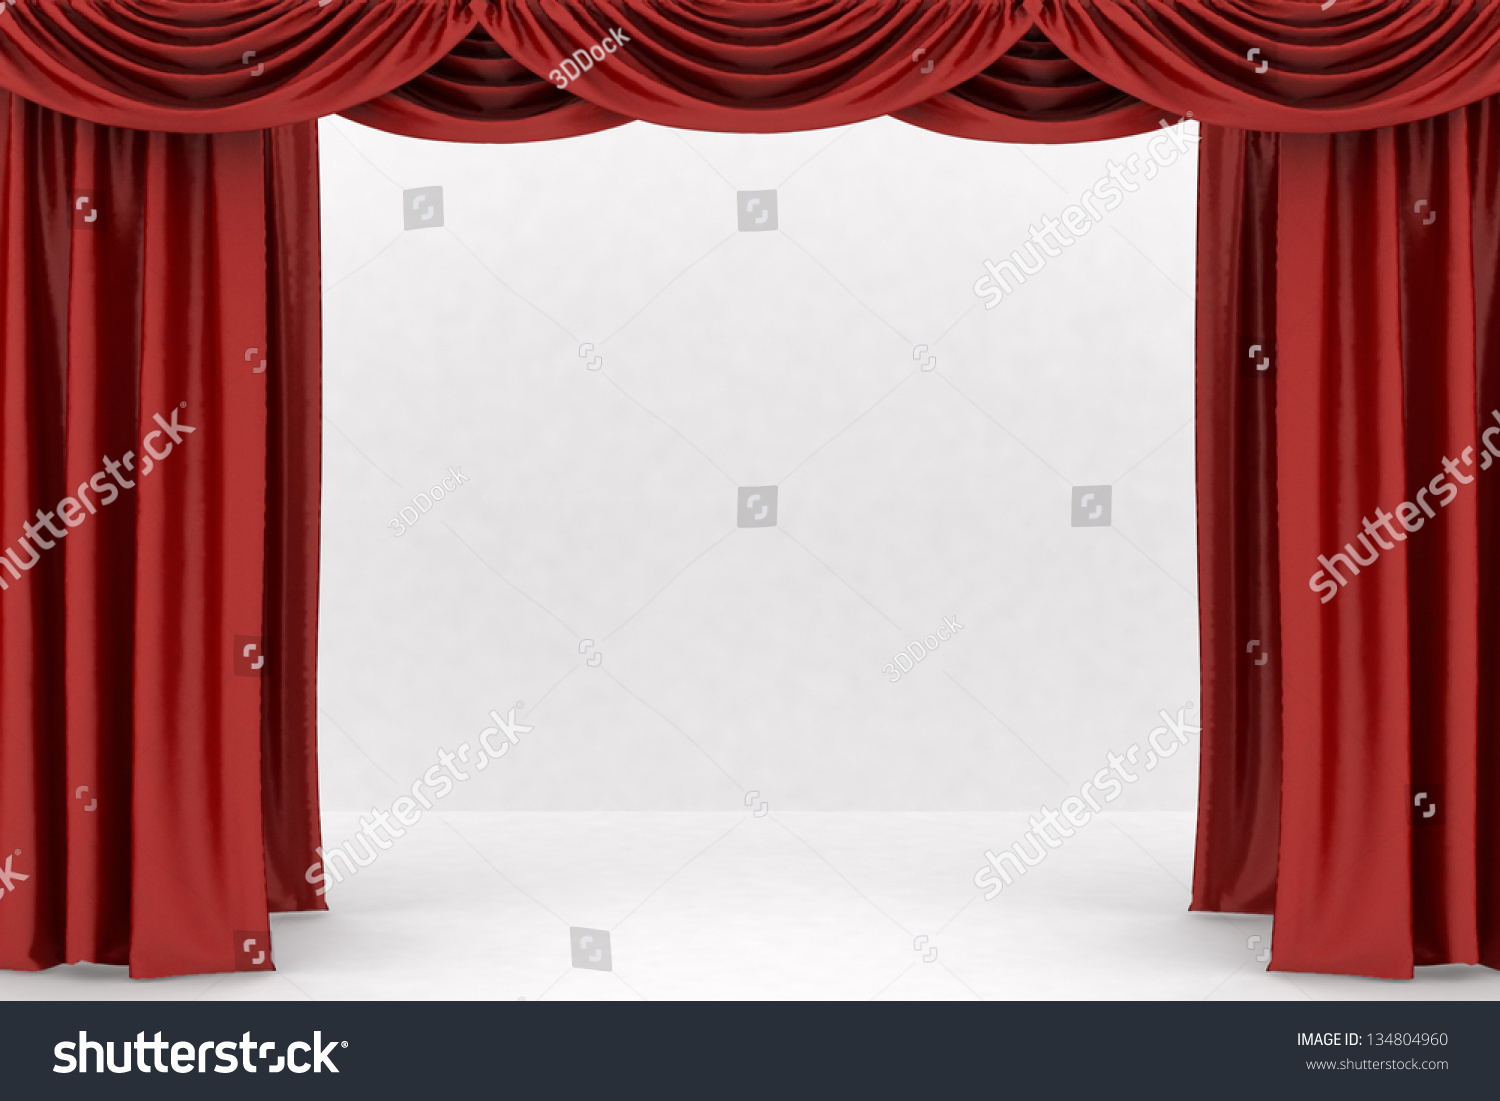 Stage curtain background open stage curtains background red stage - Open Red Theater Curtain Background